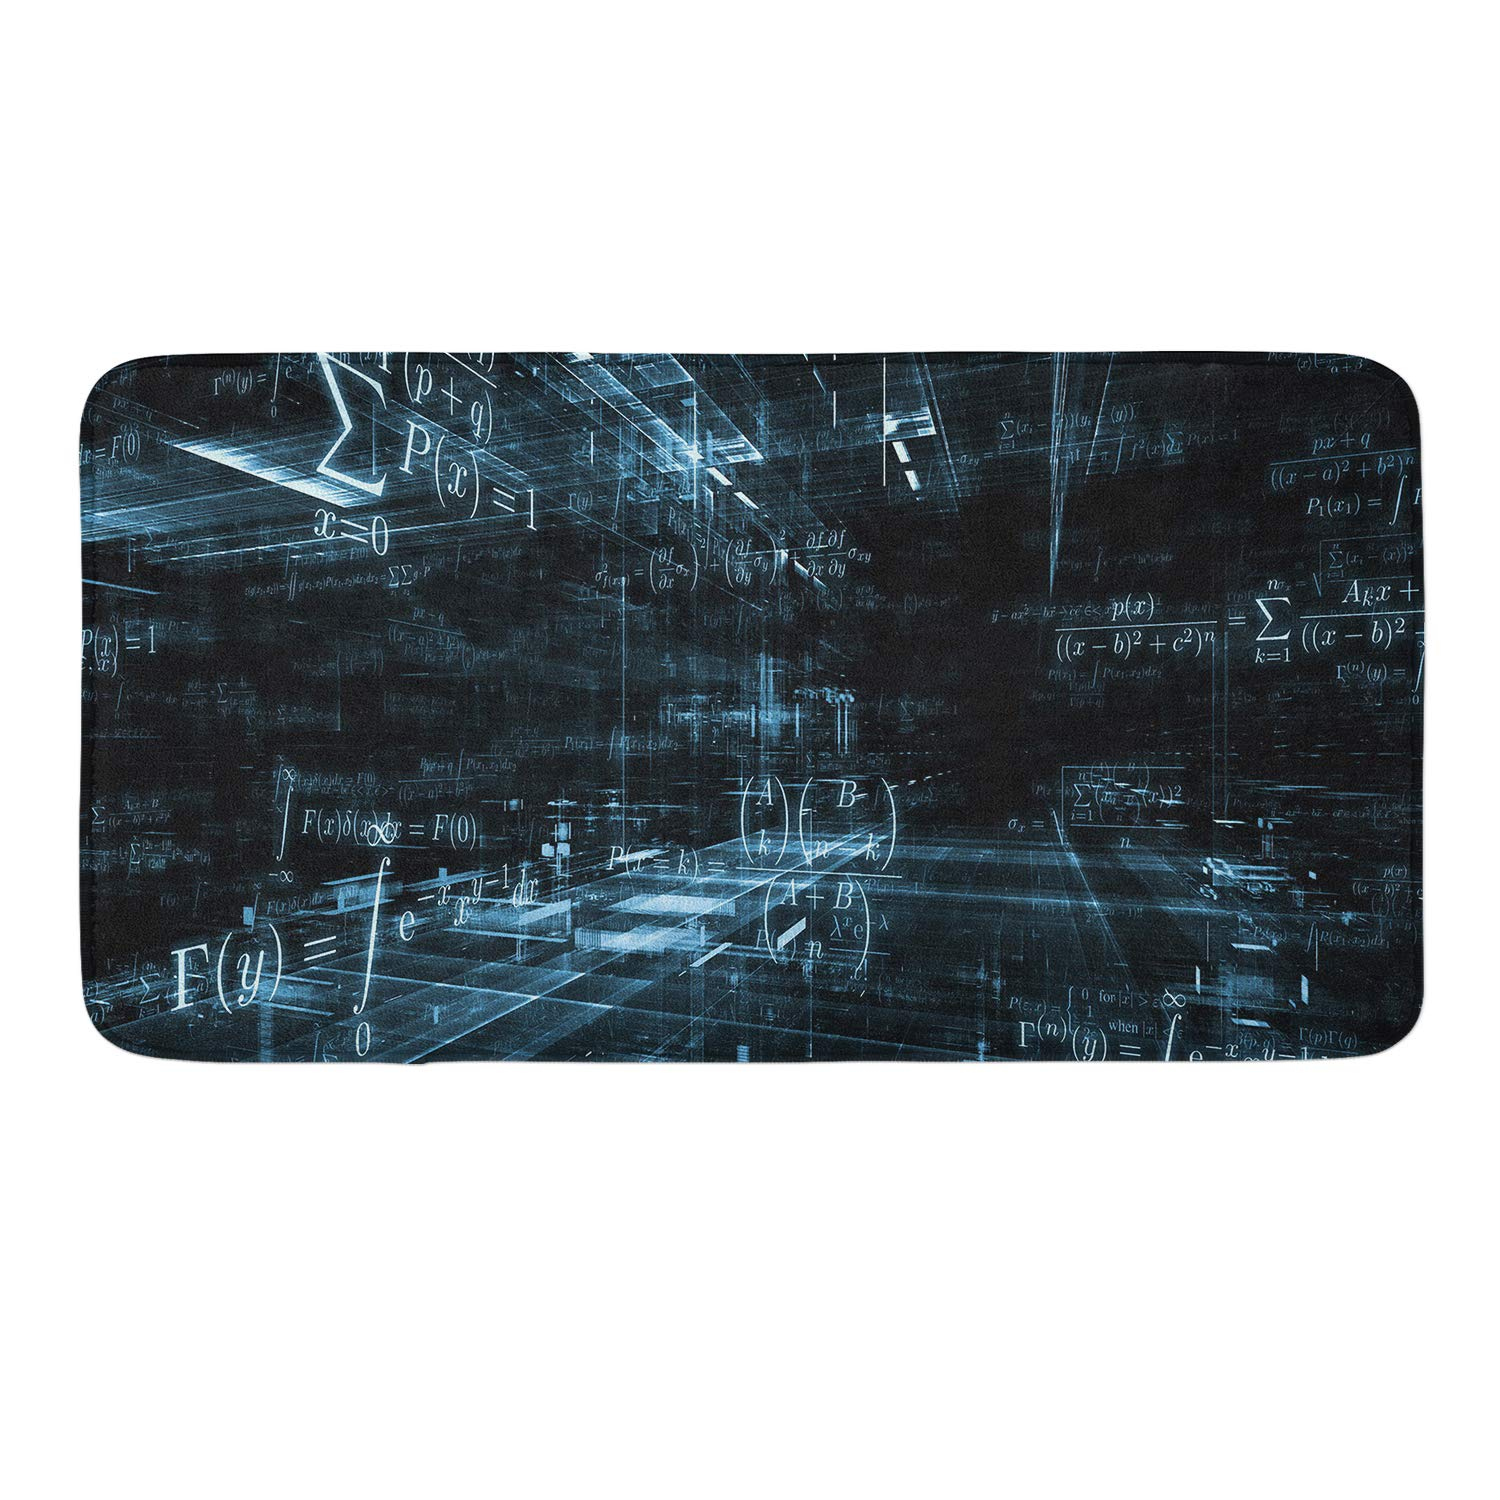 CIGOCI Non-Slip Memory Foam Bathroom Mat - 18x36 Inch, Extra Absorbent,Soft,Duarable and Quick-Dry Shaggy Mat, 3D PrintCoordinate Equation